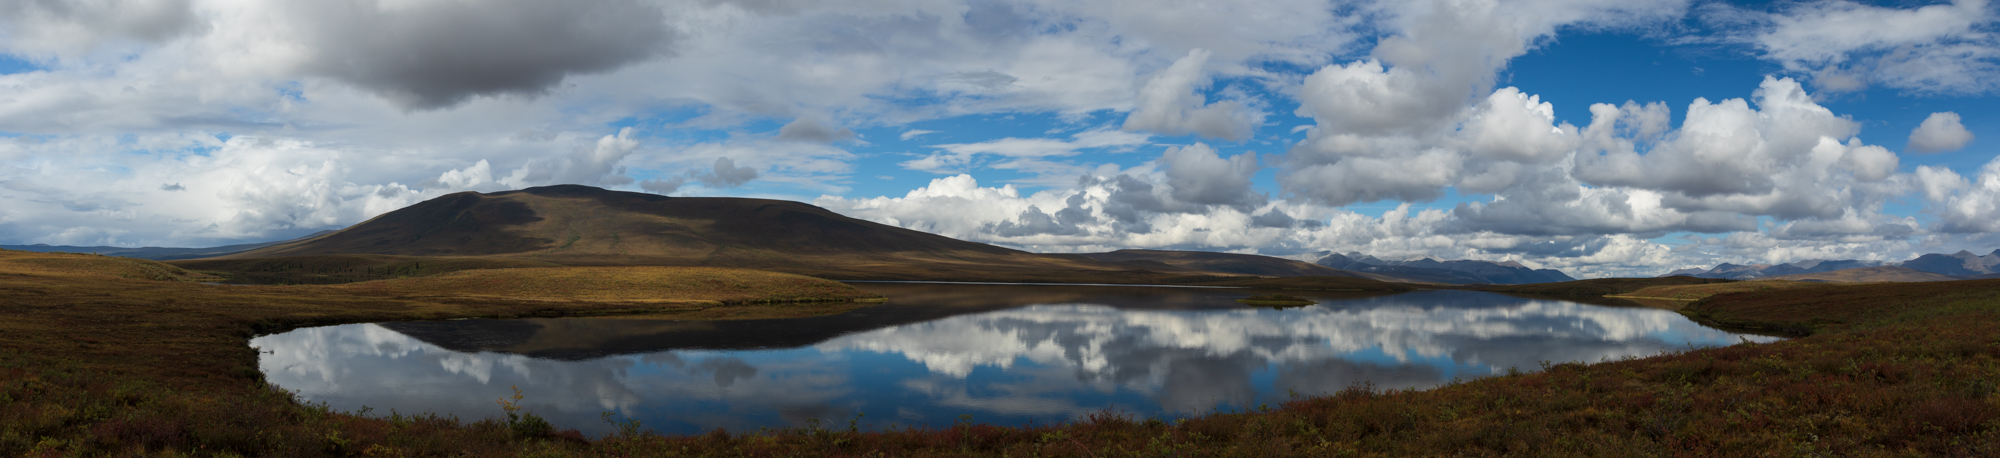 Reflecting on the Dempster Highway.jpg